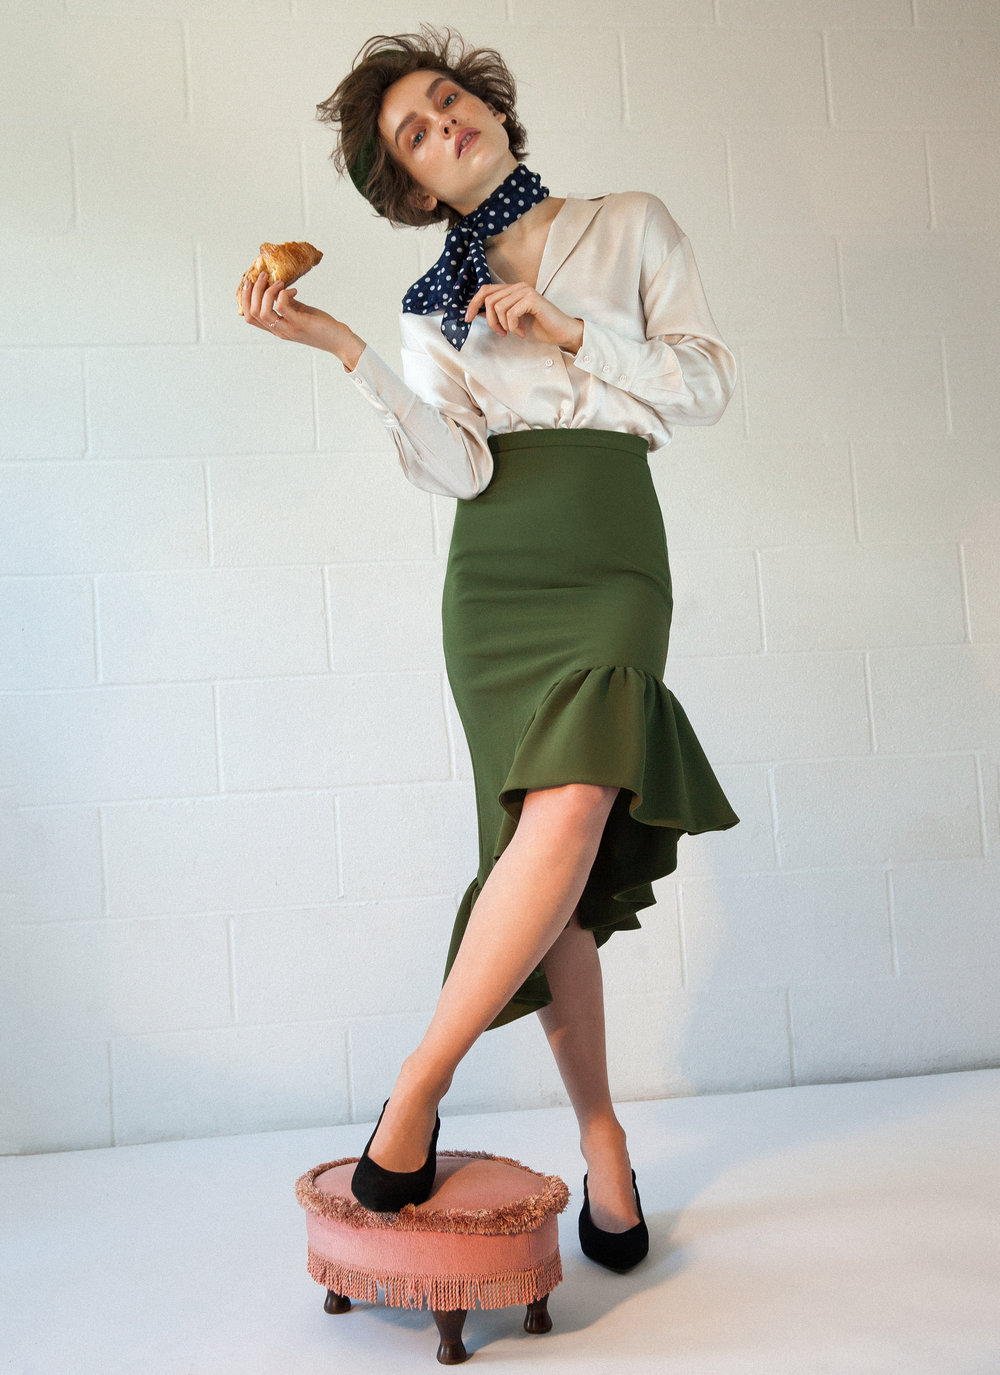 Shirt - Tara Jarmon Skirt - Edit Scarf: Cenci Vintage Berret: Cenci Vintage Shoes: Aeydee Ring: Shashi